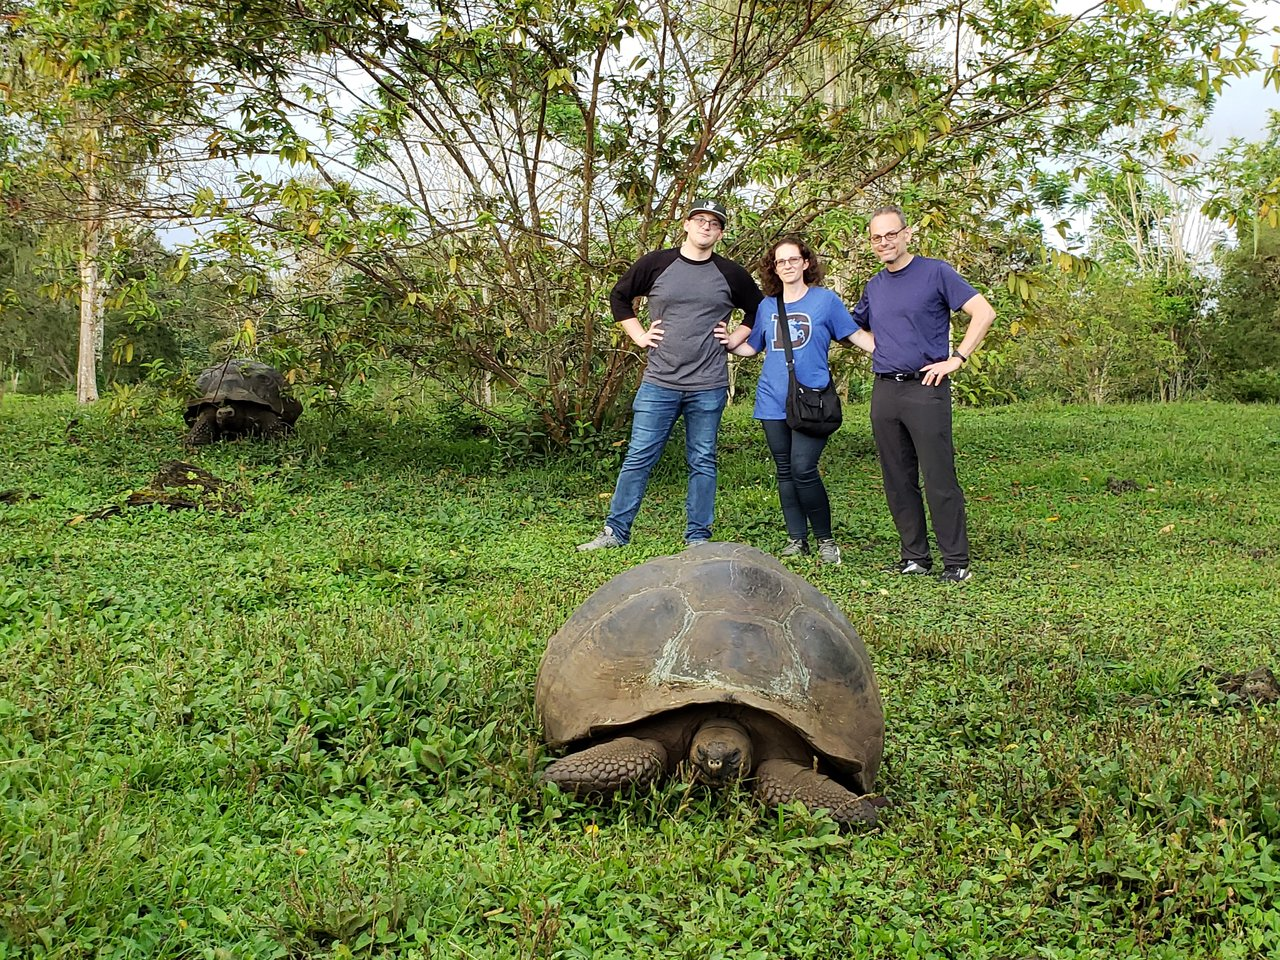 Just us and a giant tortoise | Photo taken by Peter S